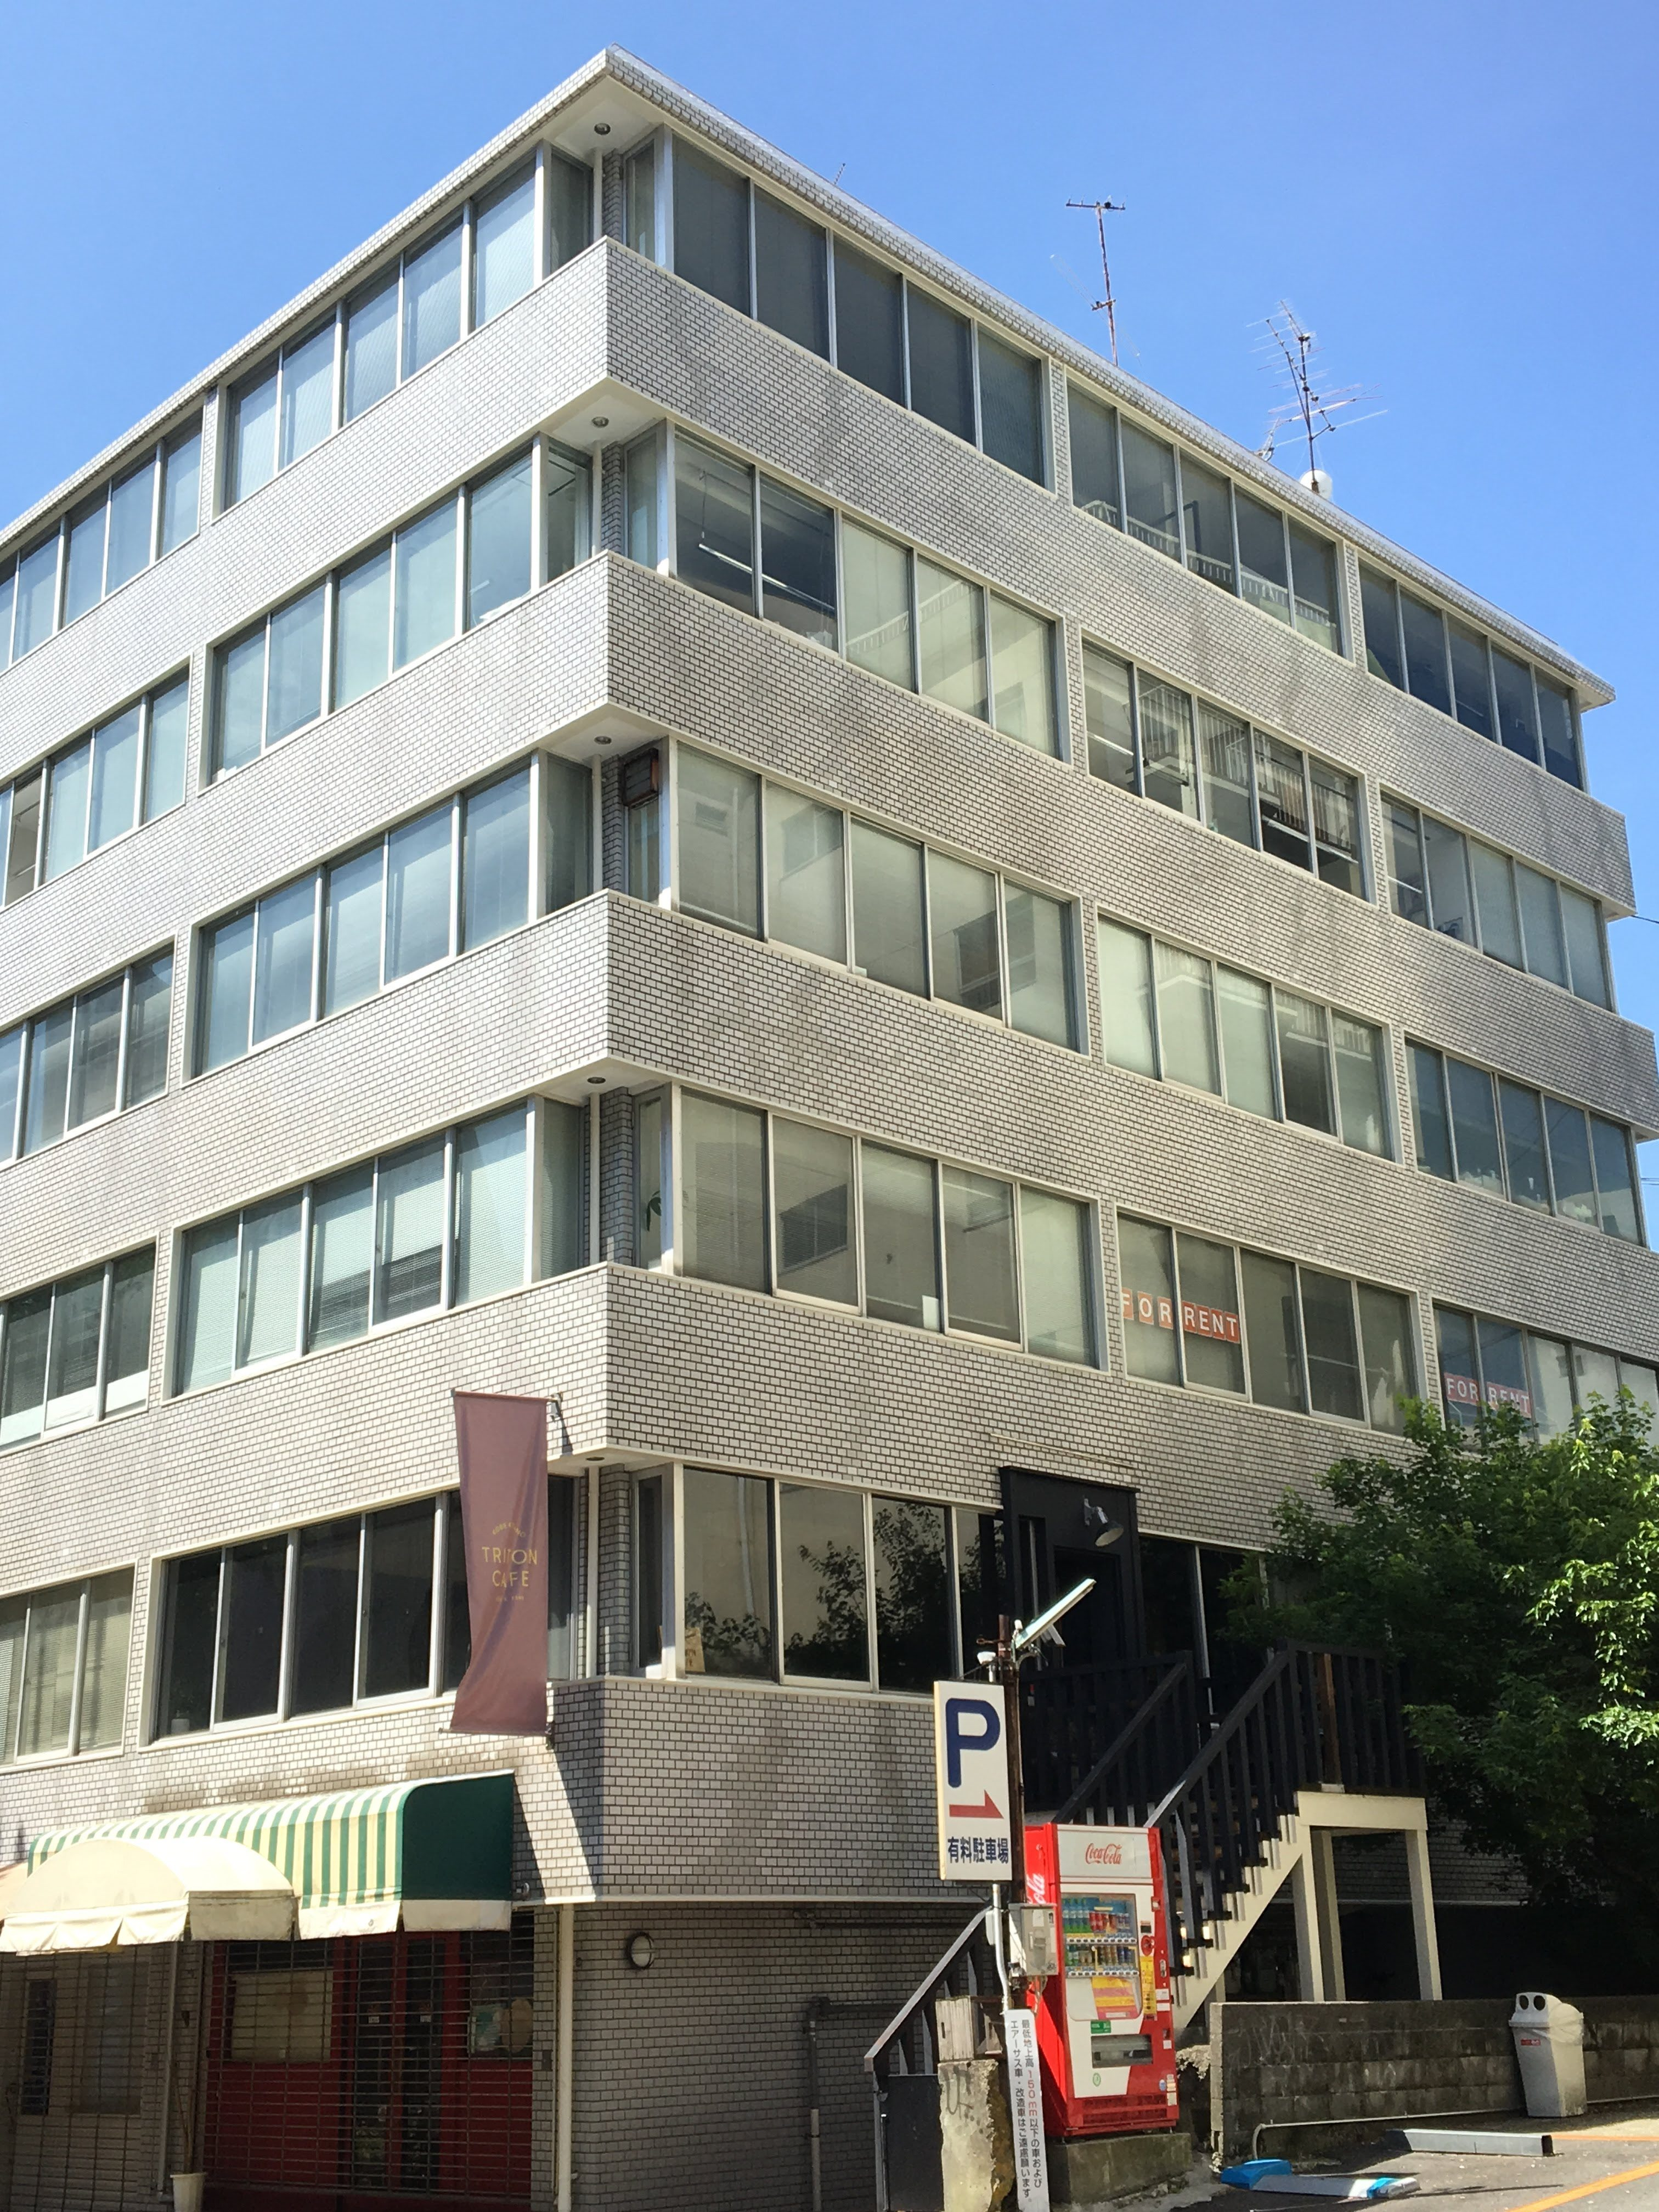 【RENTED】Office/Shop property in fashionable Kitano area – Room 304